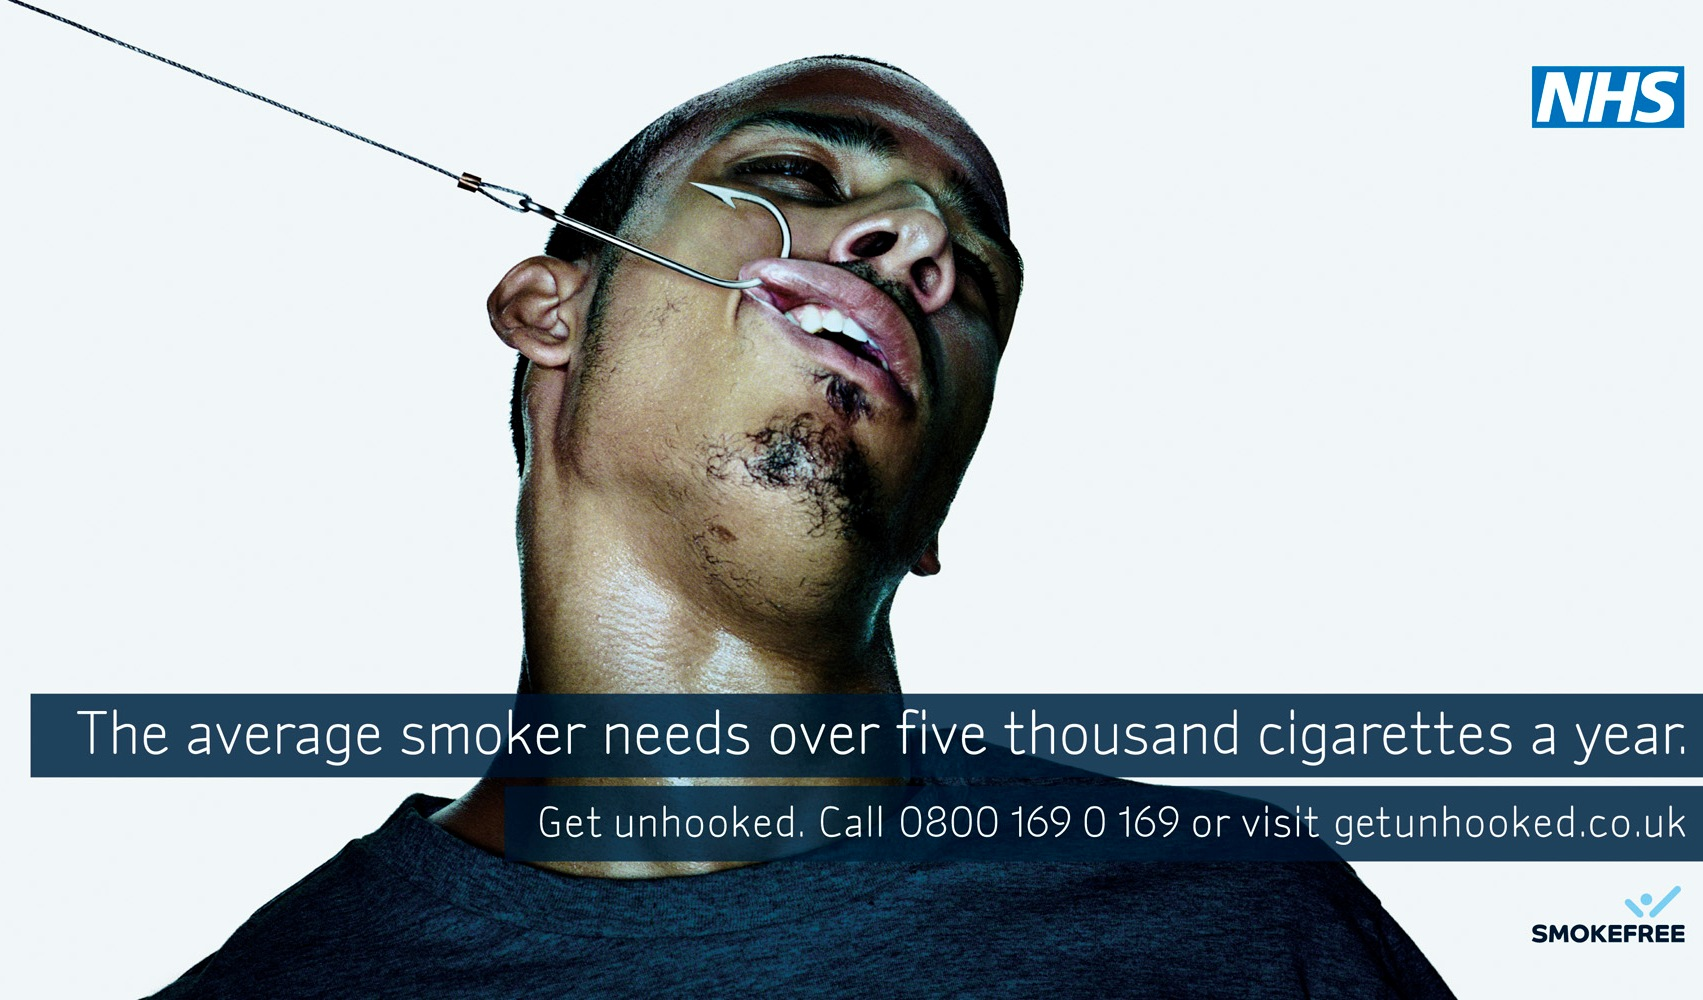 NHS. Anti-smoking